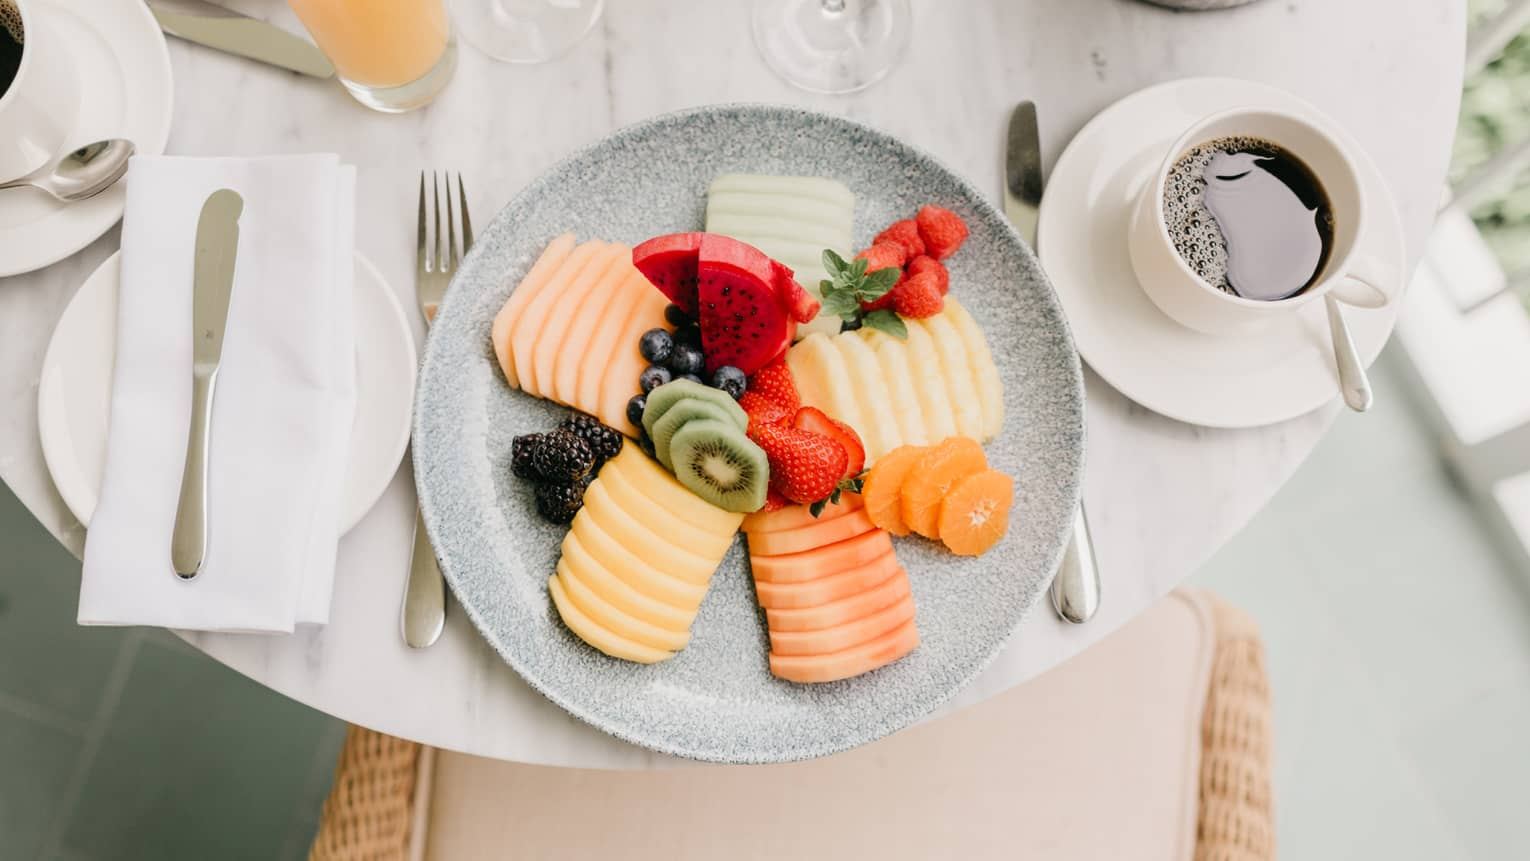 Plate of assorted sliced fruits and whole berries, place setting, coffee